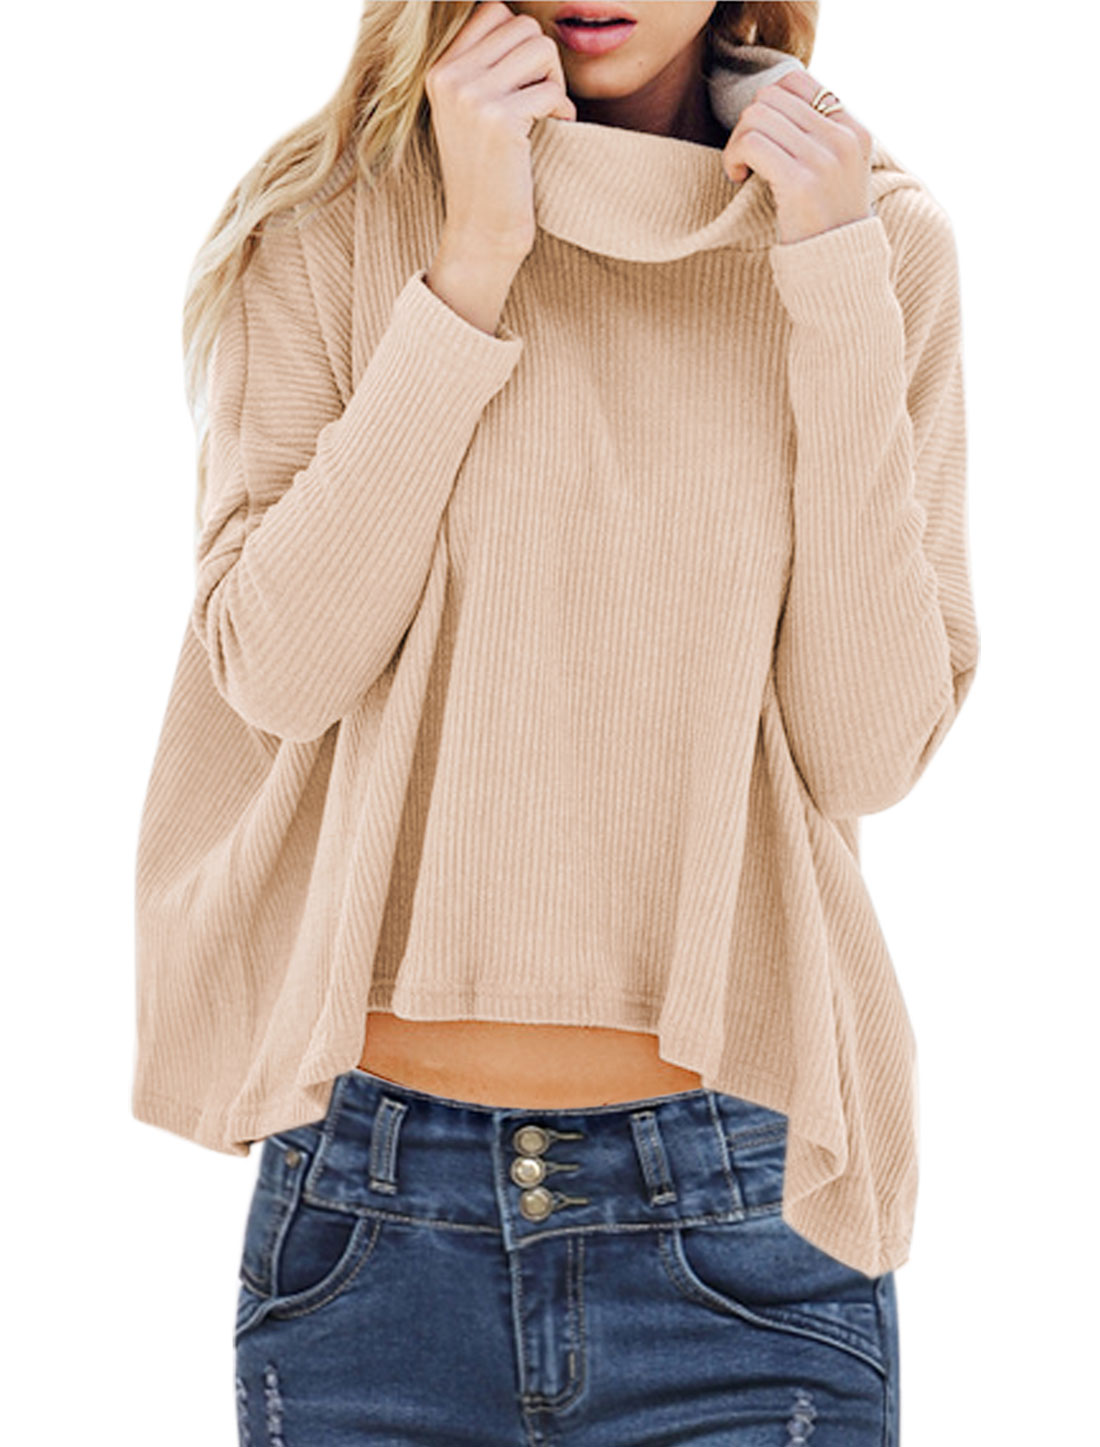 Women Cowl Neck Long Sleeves Casual High Low Hem Knitted Shirt Beige XS